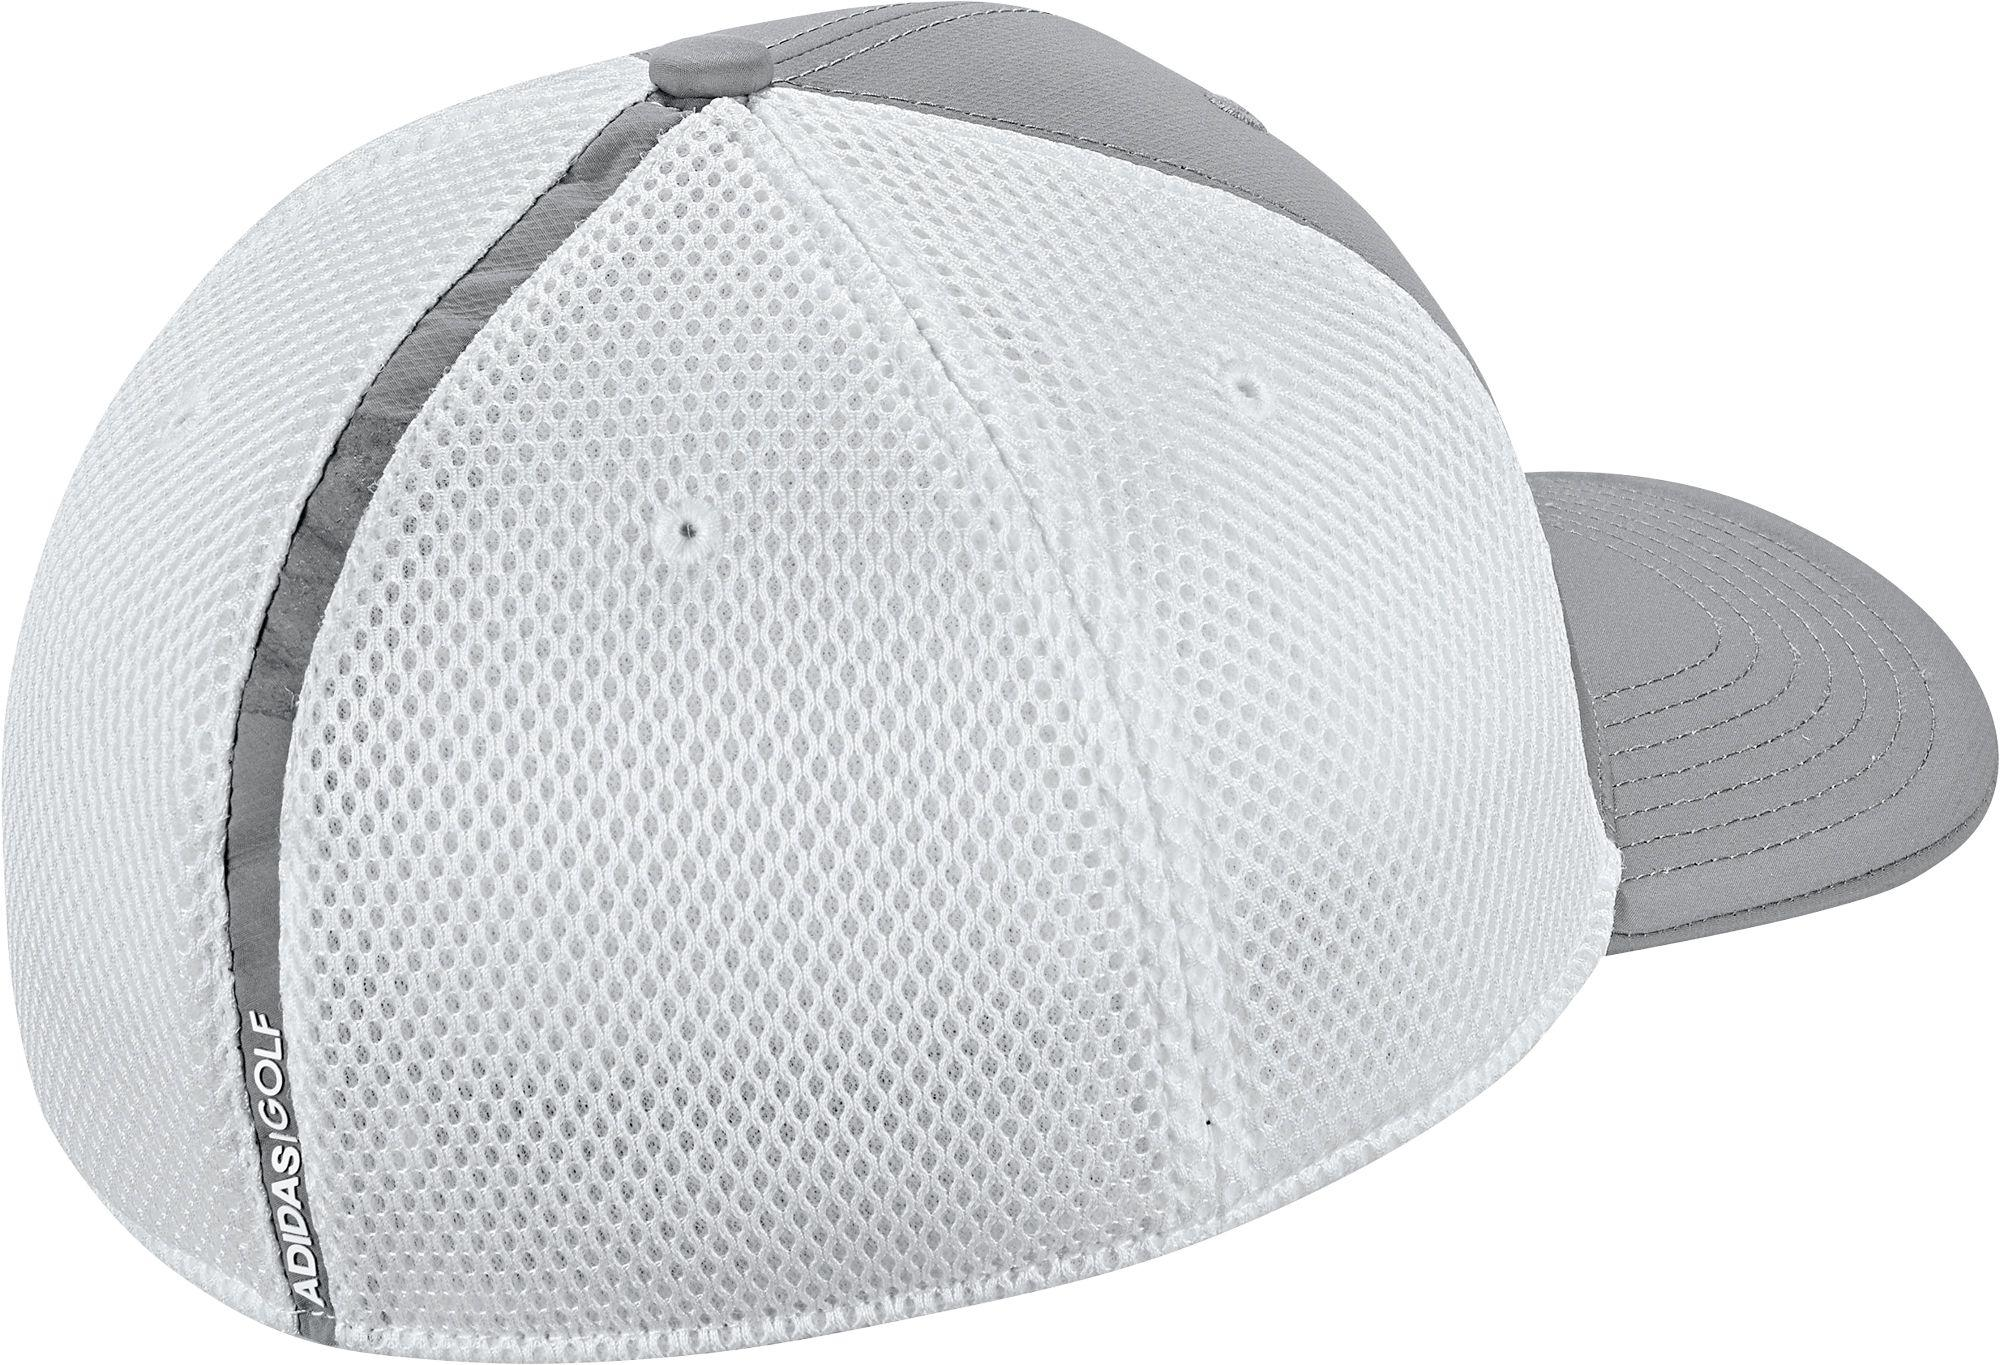 Lyst - adidas A-stretch Badge Of Sport Tour Golf Hat in Gray for Men 08dc63e2c8d